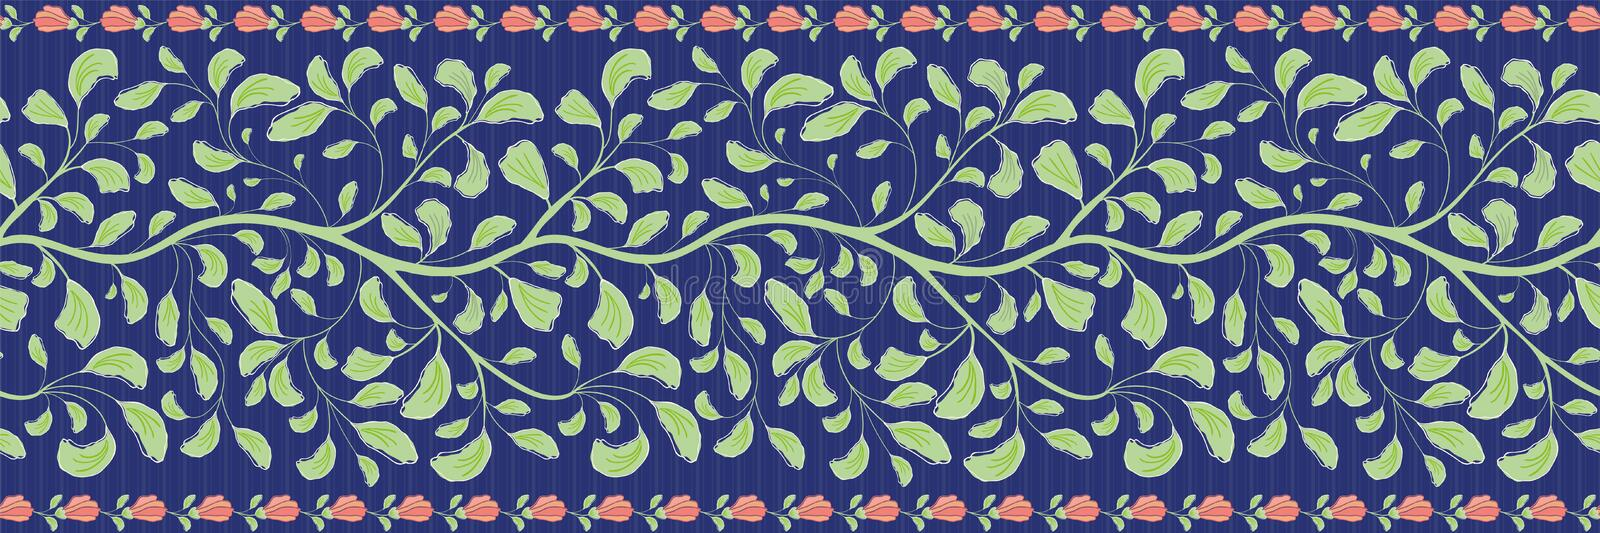 Intricate indian floral border with green leaves and coral flower edge. Seamless vector pattern on striped dark blue vector illustration